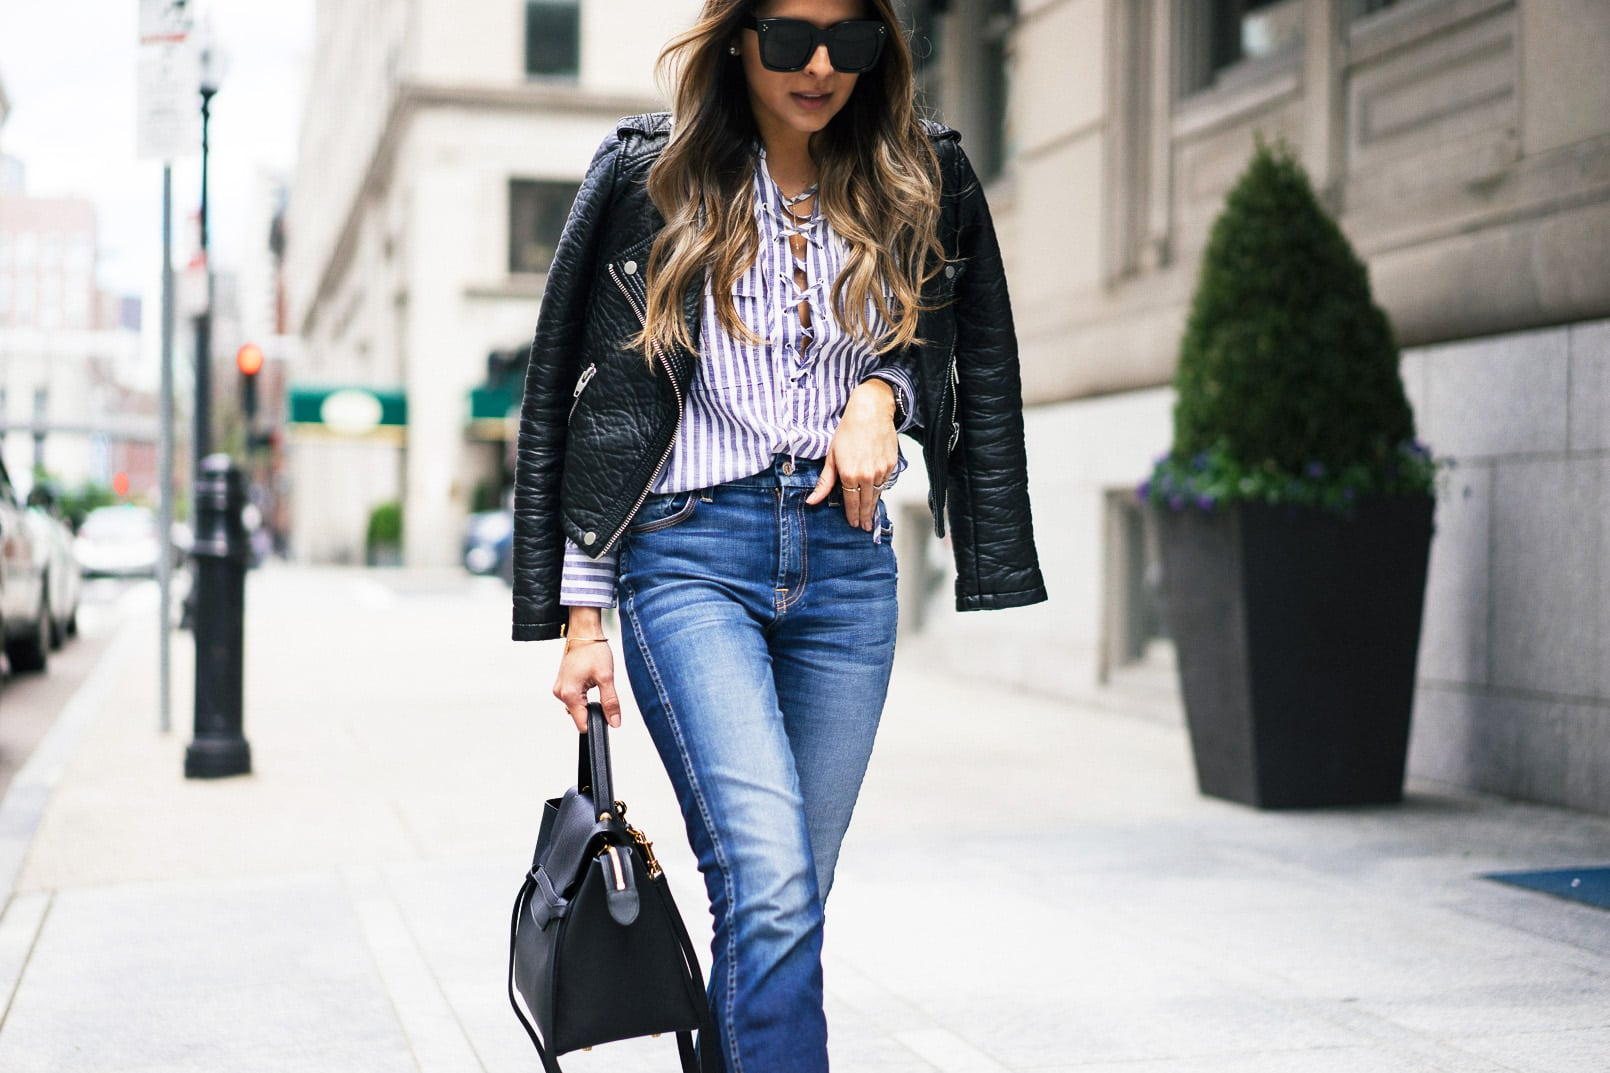 7fam ankle skinny jeans, black pumps, leather jacket, lace-up shirt, back to basics, casual look